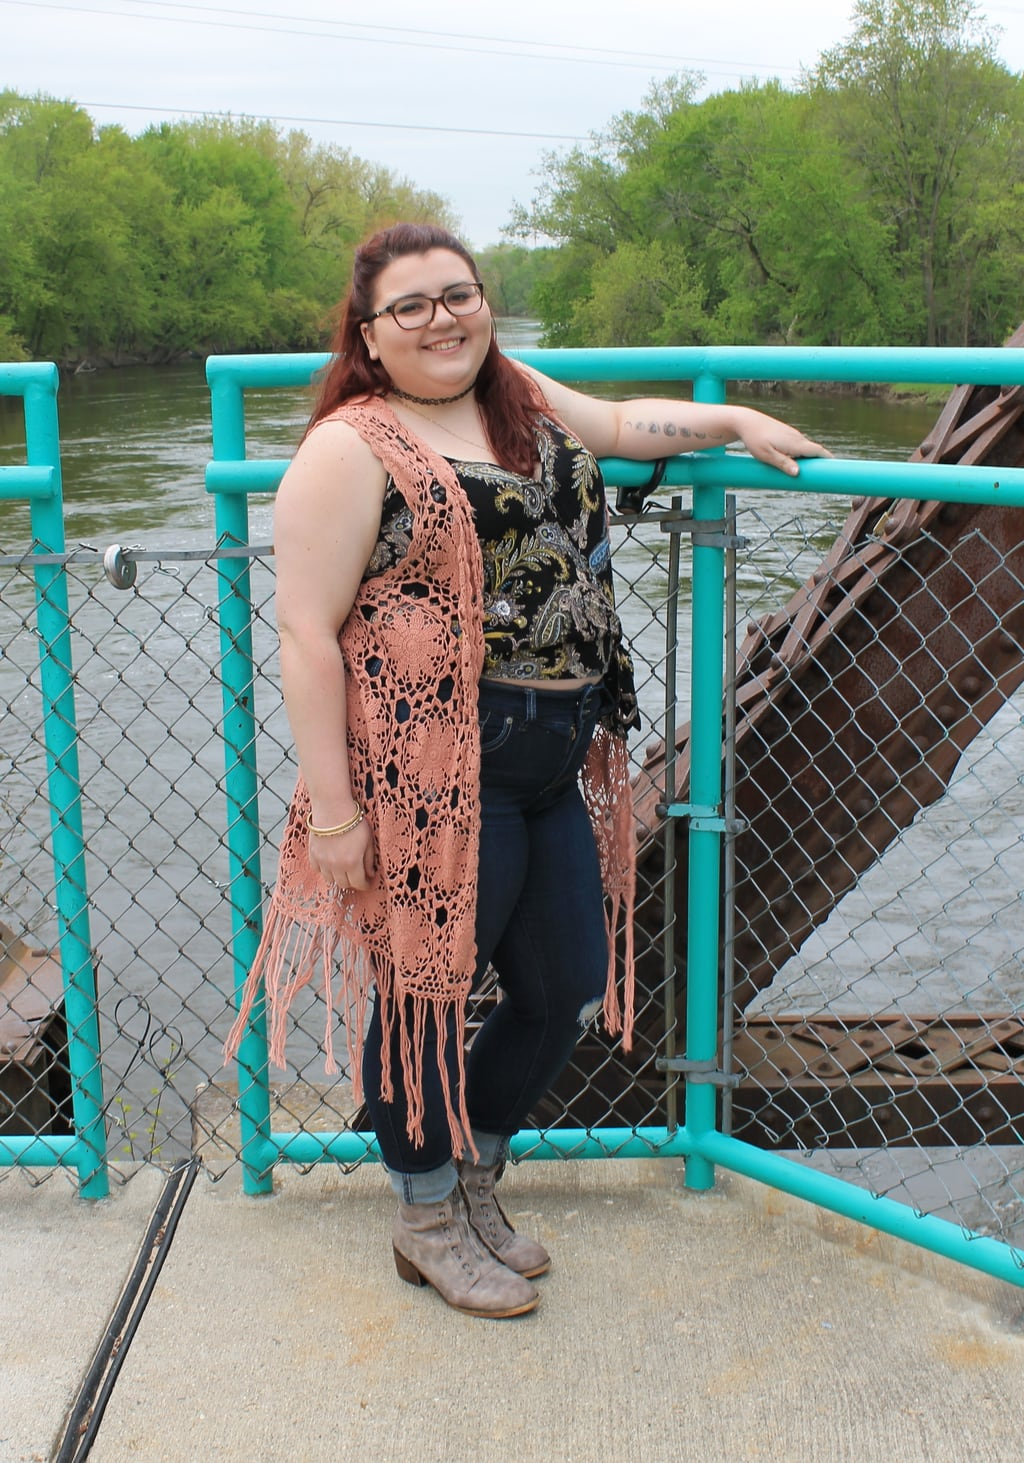 This Grand Valley State University student wears a coral crochet duster vest, a patterned black and gold wrap top, high-waisted skinny jeans, and grey booties.